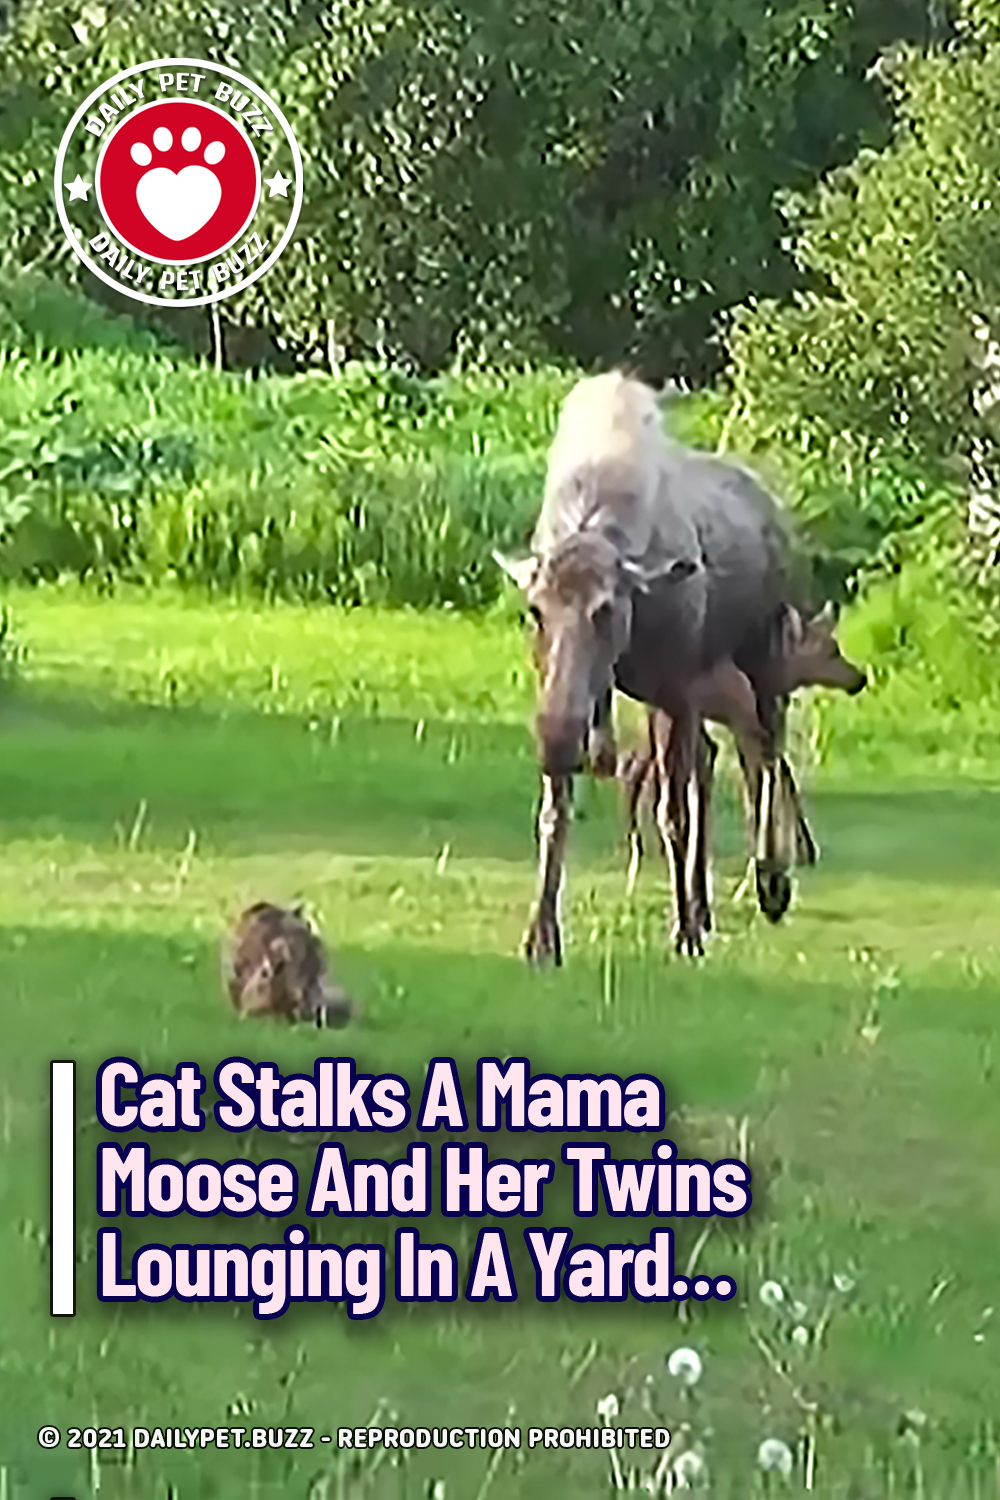 Cat Stalks A Mama Moose And Her Twins Lounging In A Yard...